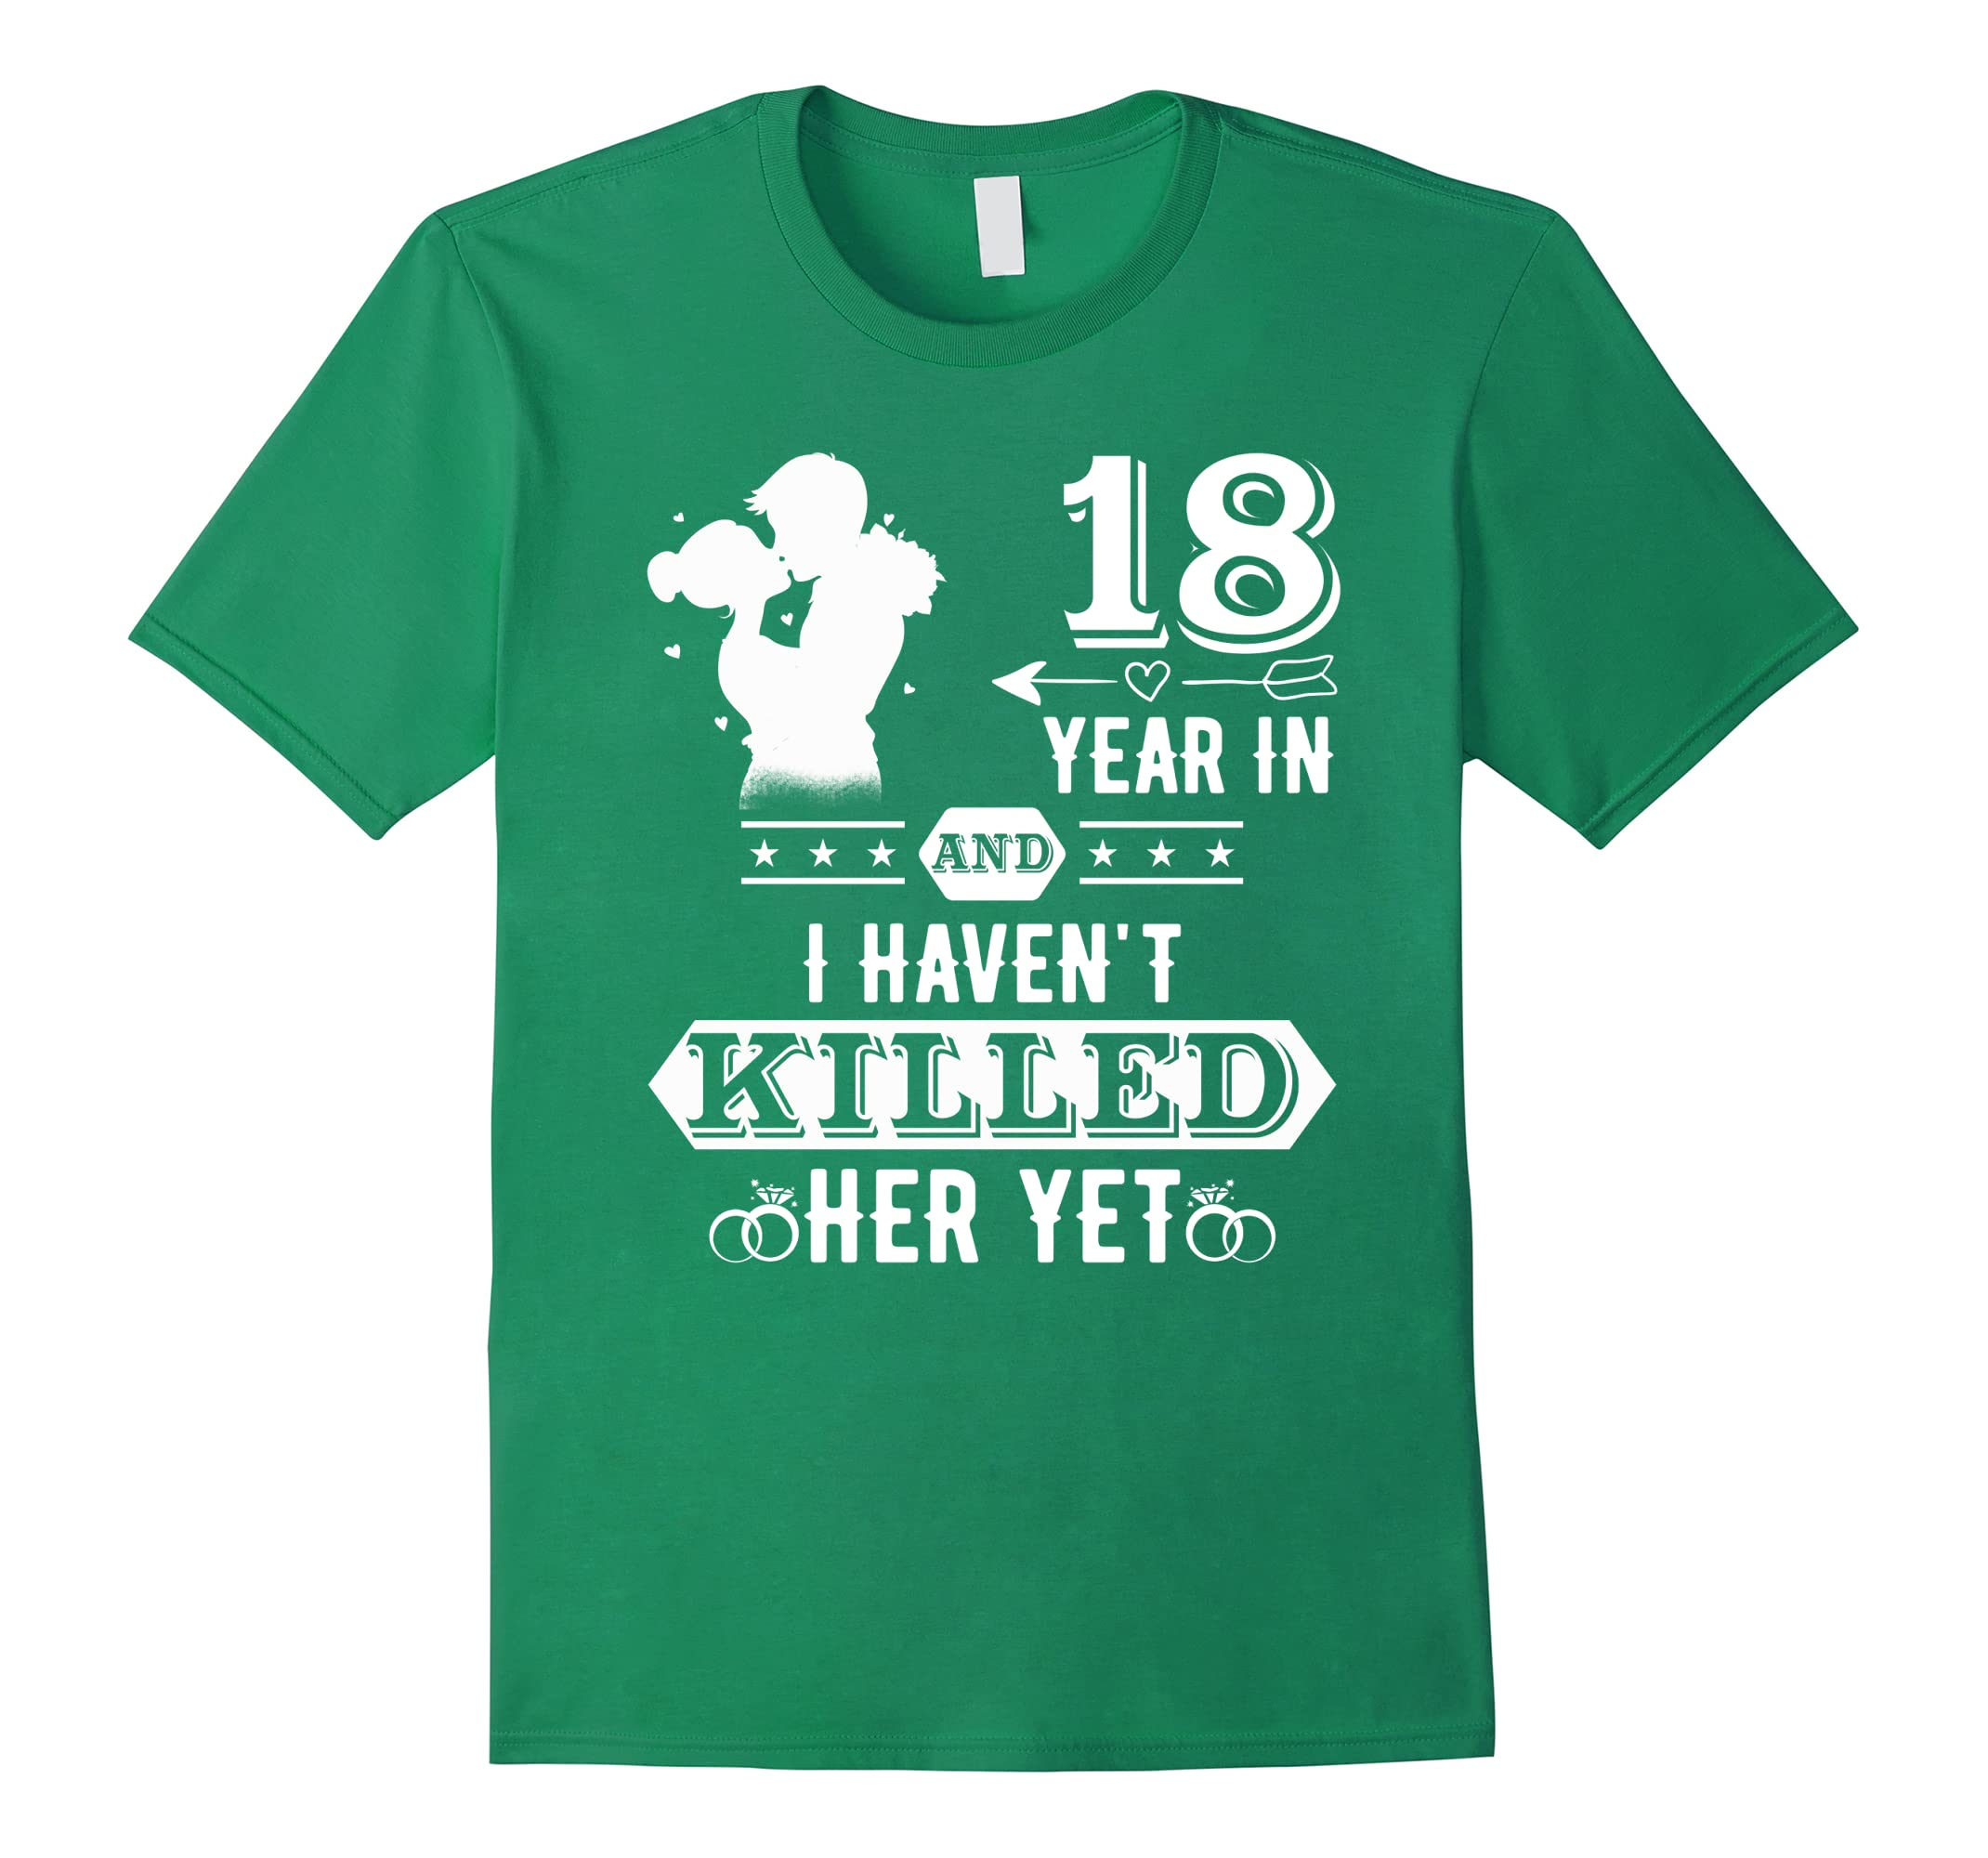 Gifts For 18th Wedding Anniversary: Couple T Shirts. 18th Wedding Anniversary Gifts For